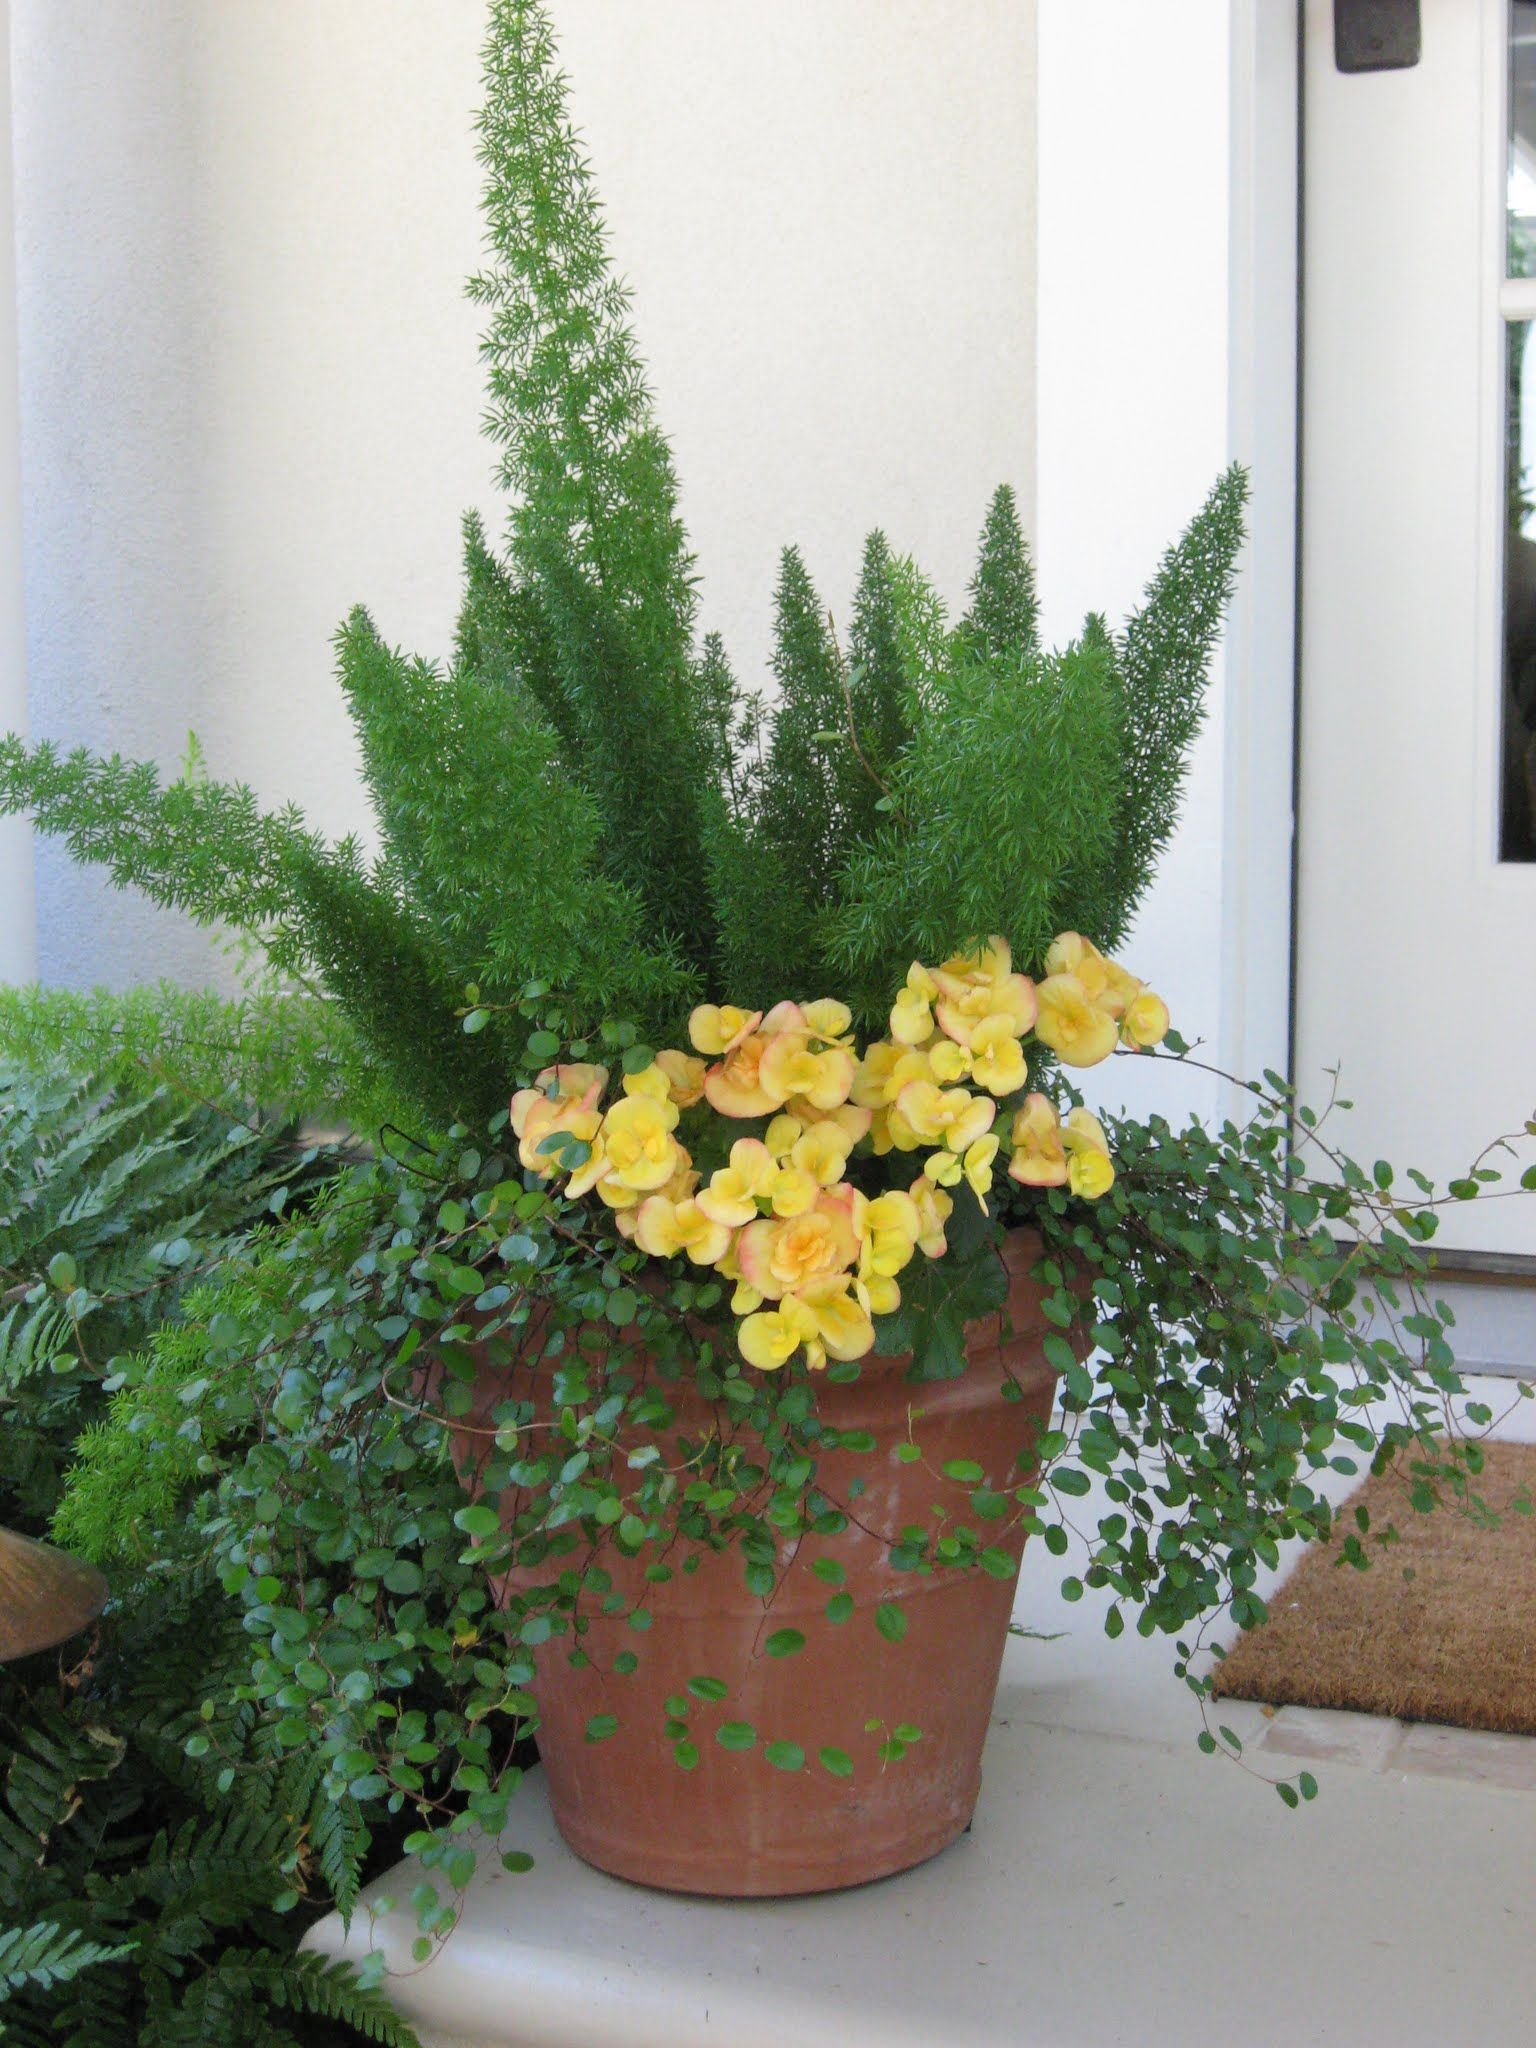 Potted Plants And The Necessary Spring Care: Foxtail Asparagus Fern, Tuberous Begonia, Thread Vine